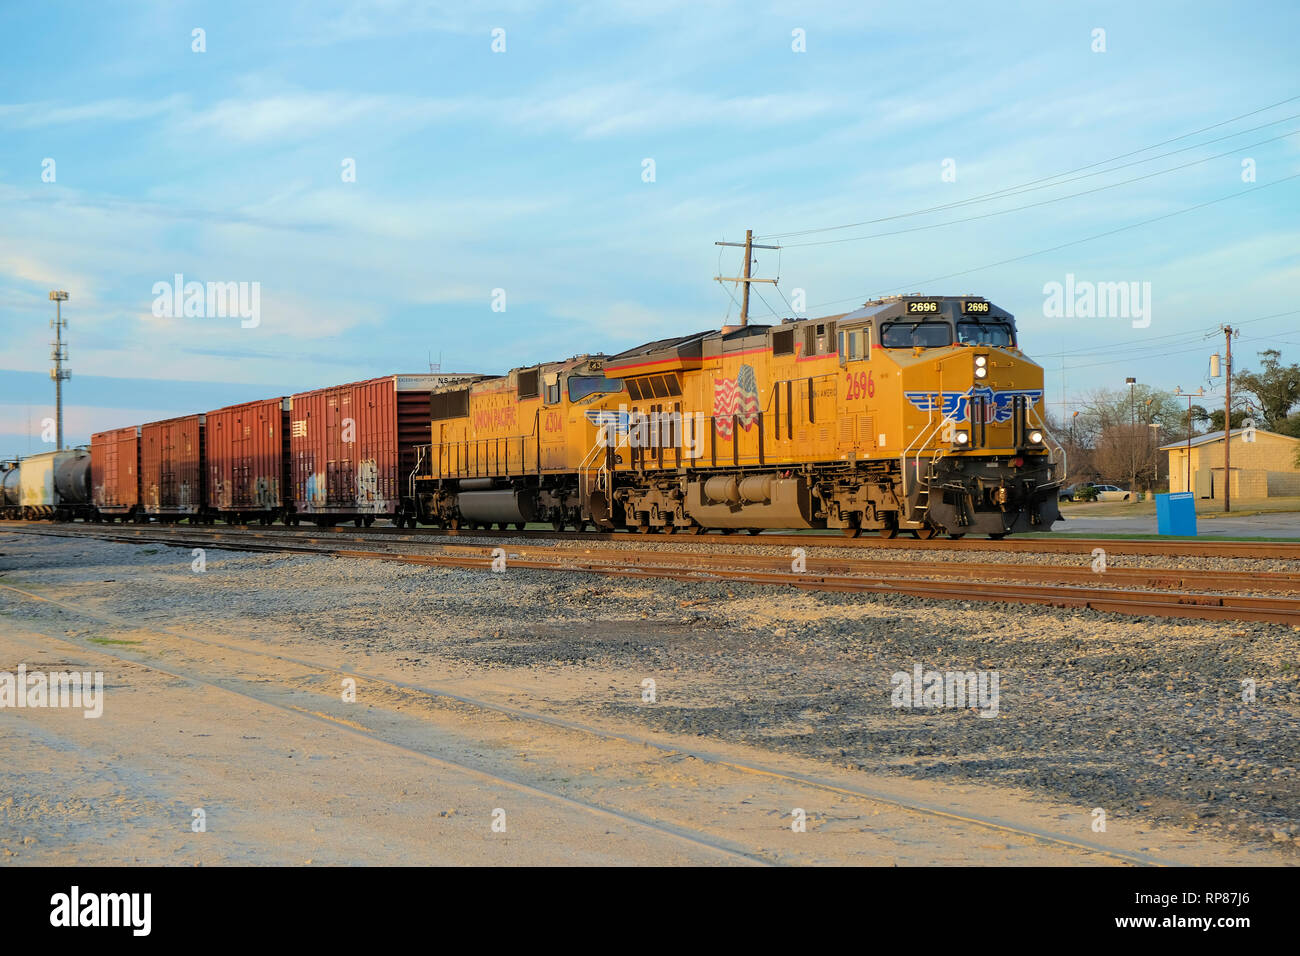 Union Pacific locomotive engine number 2696 pulling freight cars through Bryan, Texas, USA. - Stock Image